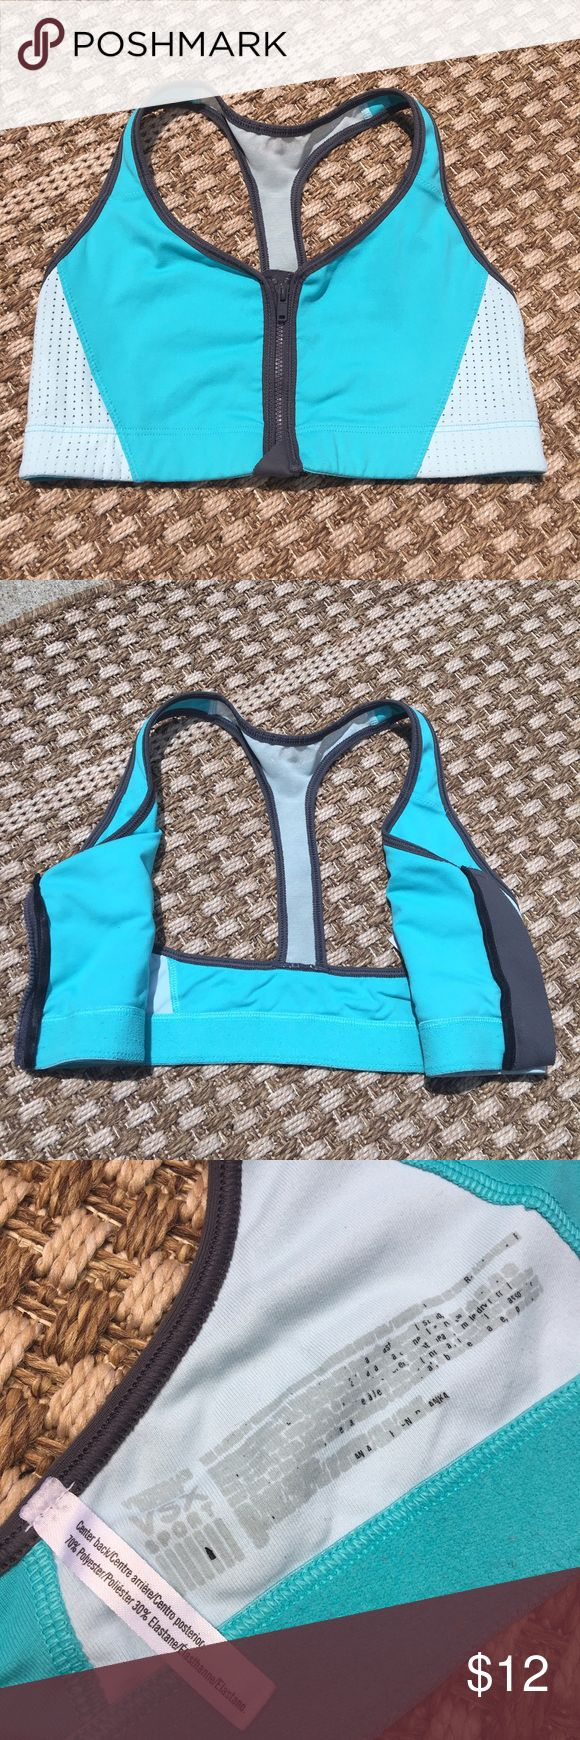 Blue Zip Up Victoria's Secret Sports Bra Worn a few times, the tag is peeling off. Still in great condition, nothing else wrong. Zips up the front, no padding but still supportive. The back is mesh. I don't know what size it is, but I usually wear xs or 32b Victoria's Secret Intimates & Sleepwear Bras